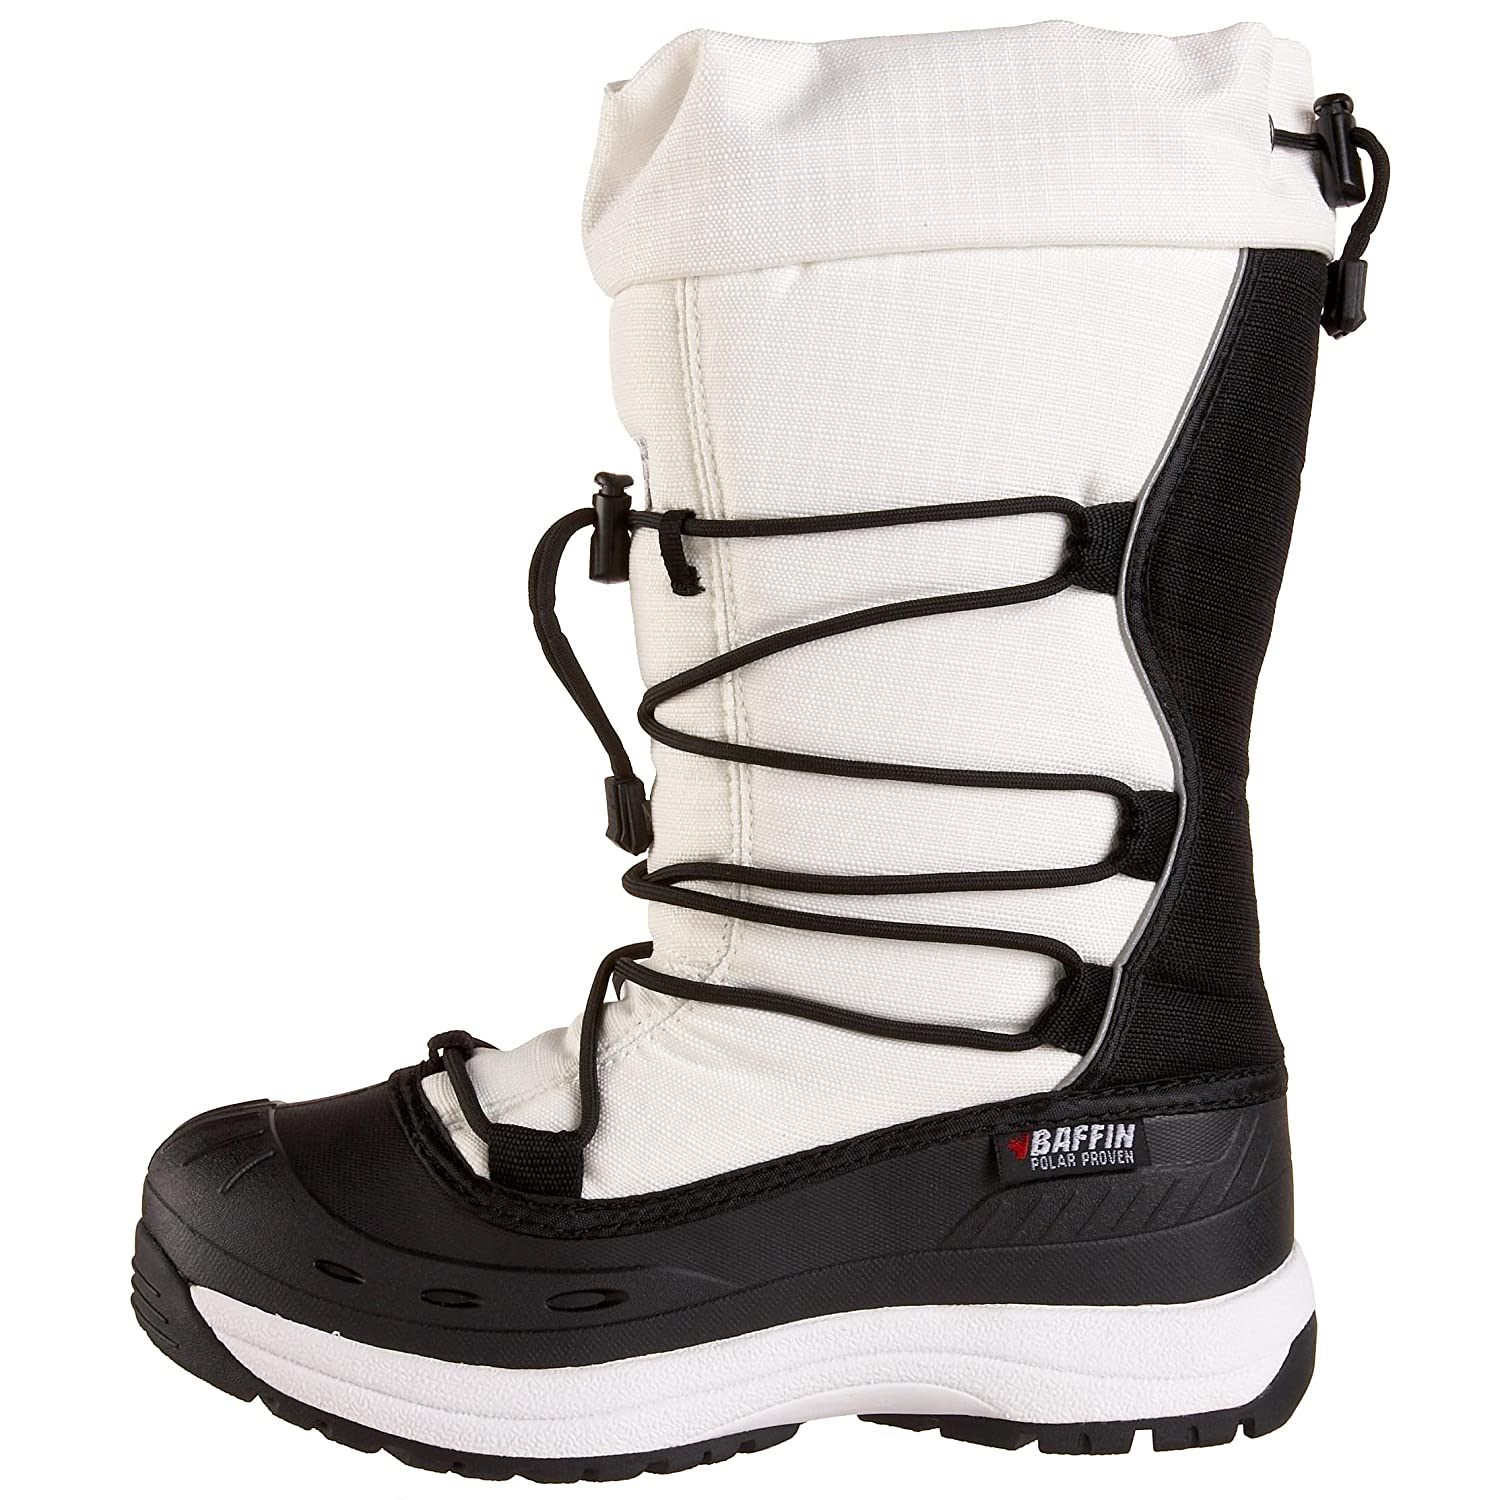 Baffin Women's Snogoose Winter Boot US|White B002D48RRY 6 B(M) US|White Boot 7f4d7e